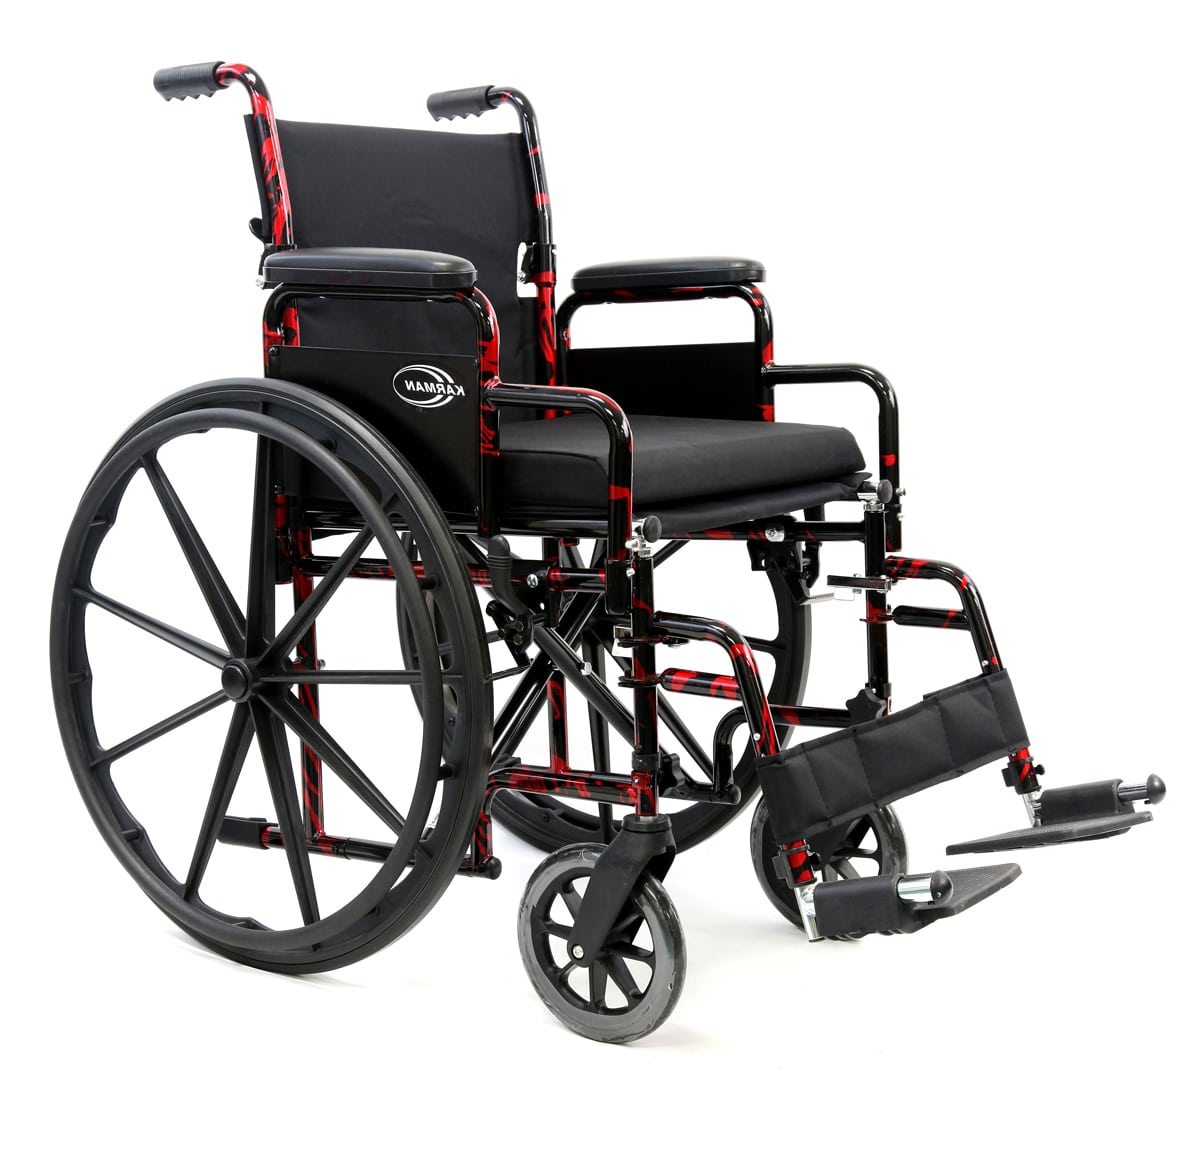 wheel chair in delhi x racer ultra light wheelchairs lightweight ultralight